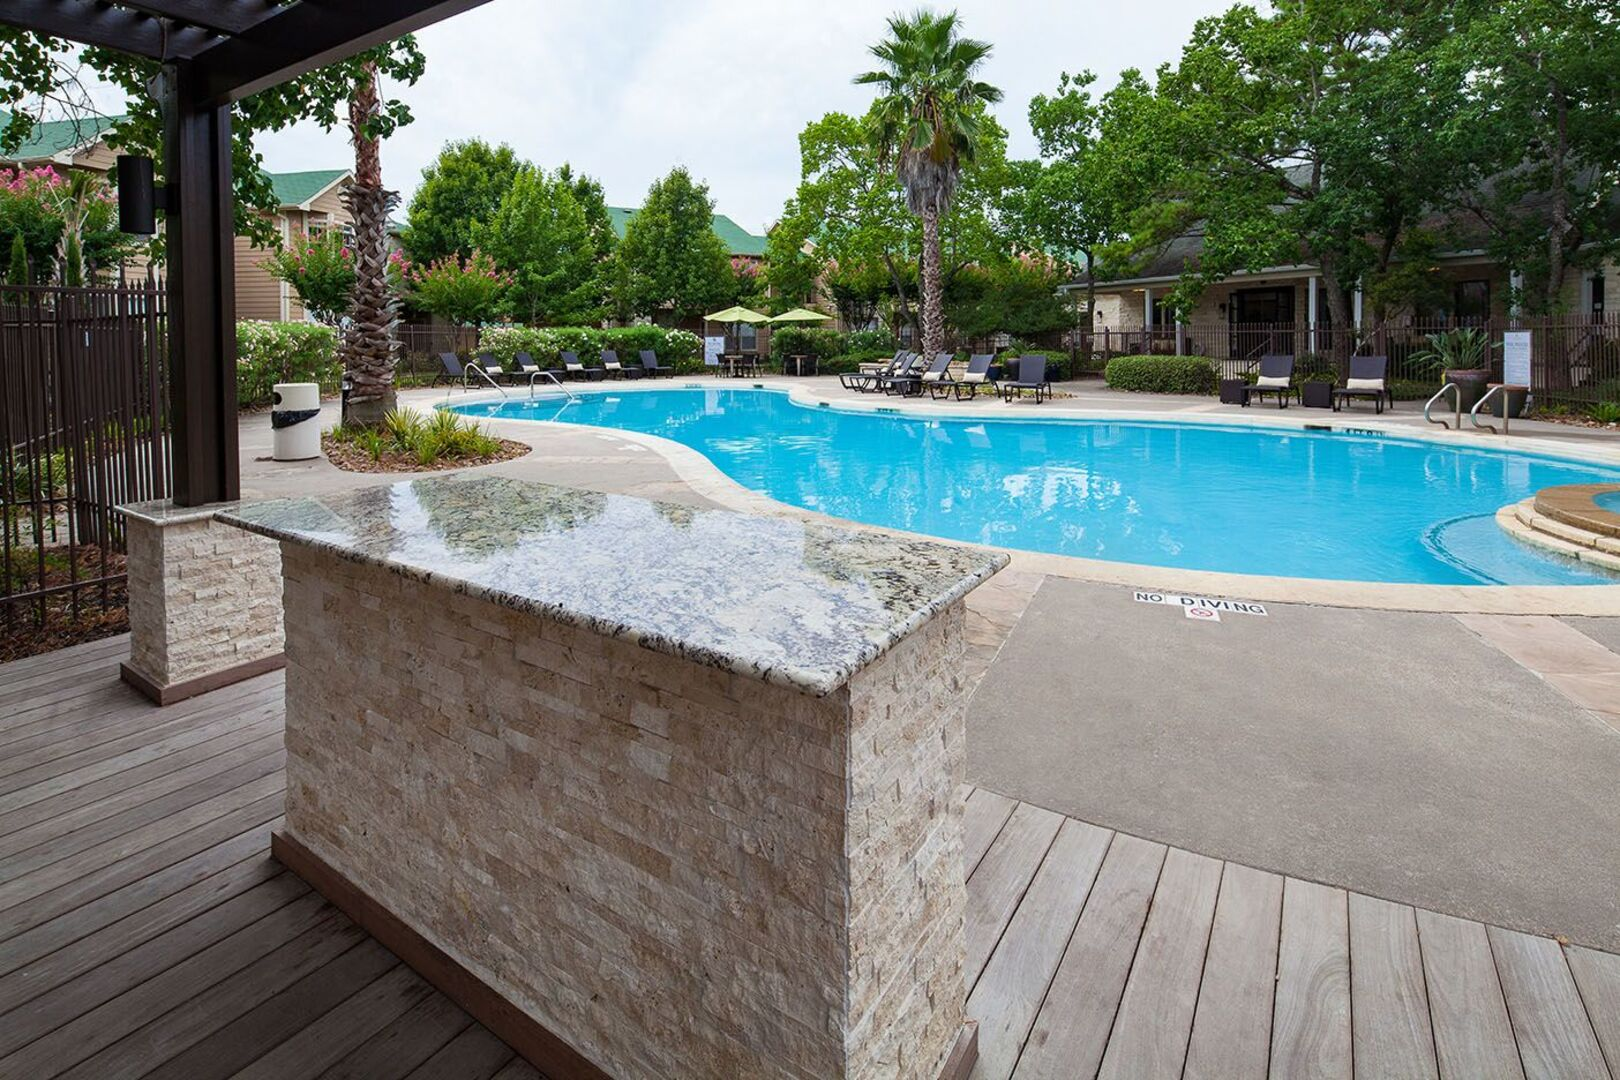 stone brook photo gallery baytown tx apartment pictures